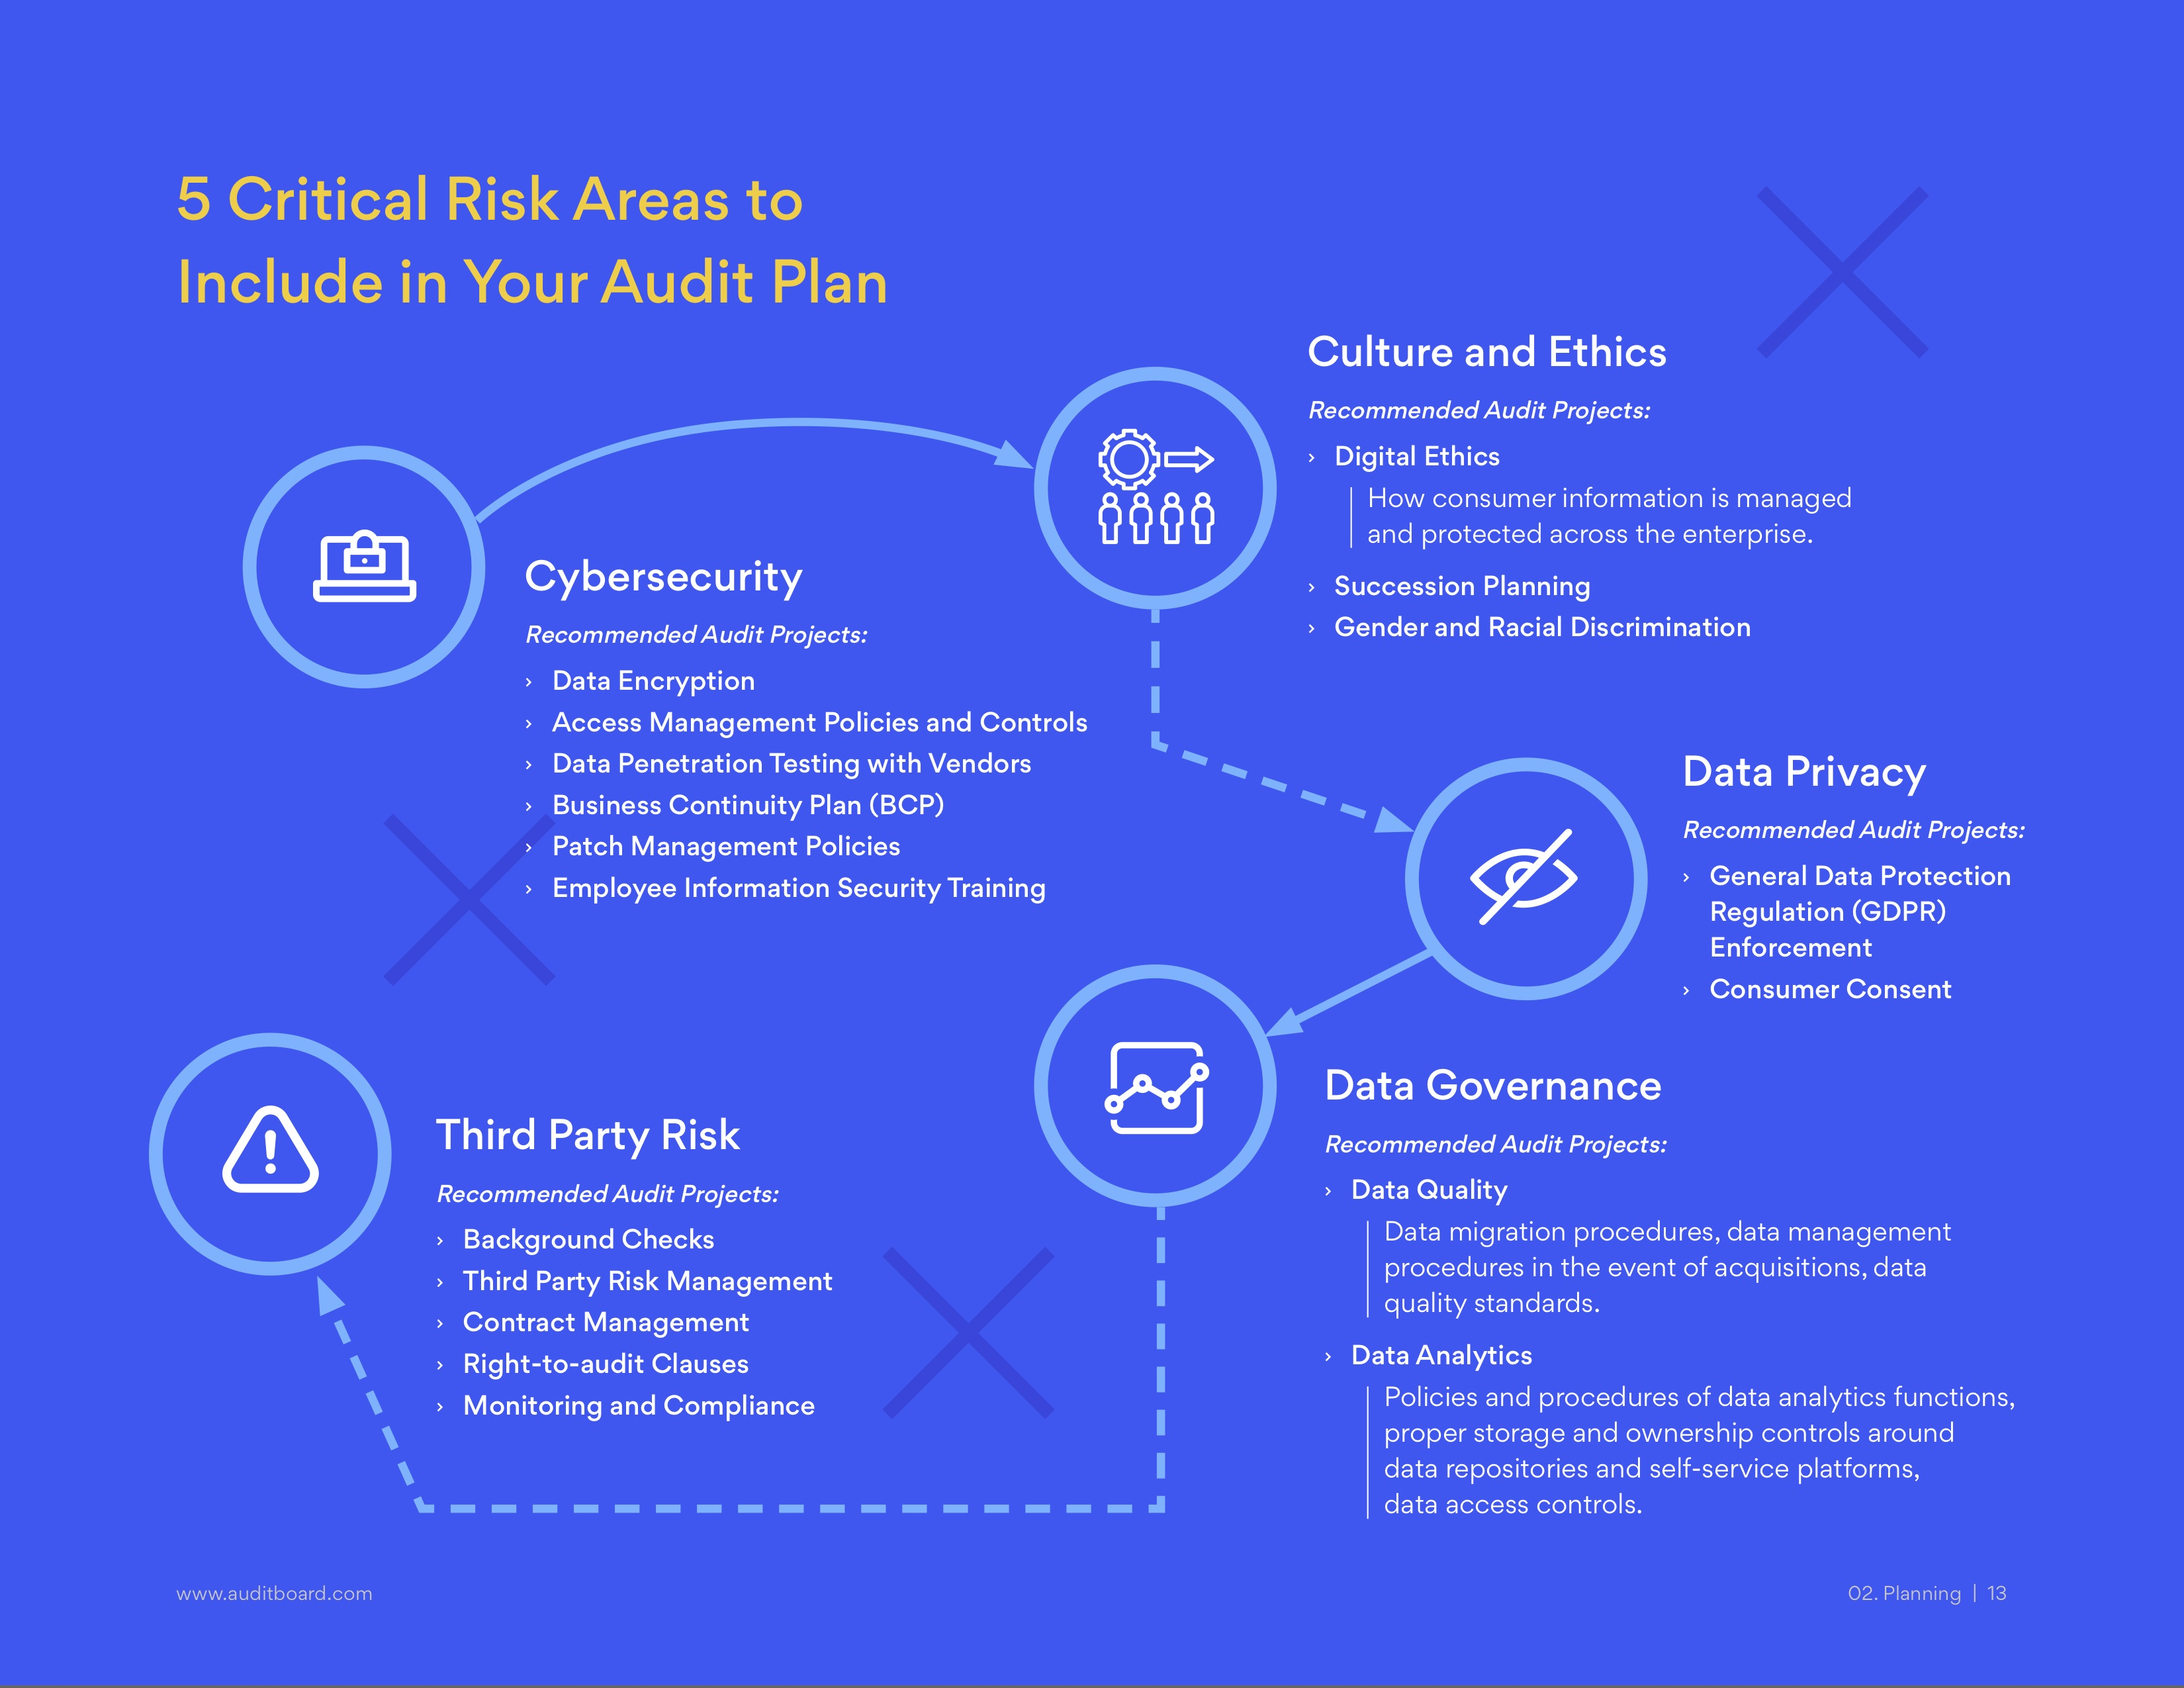 5 Critical Risk Areas to Include in Your Audit Plan